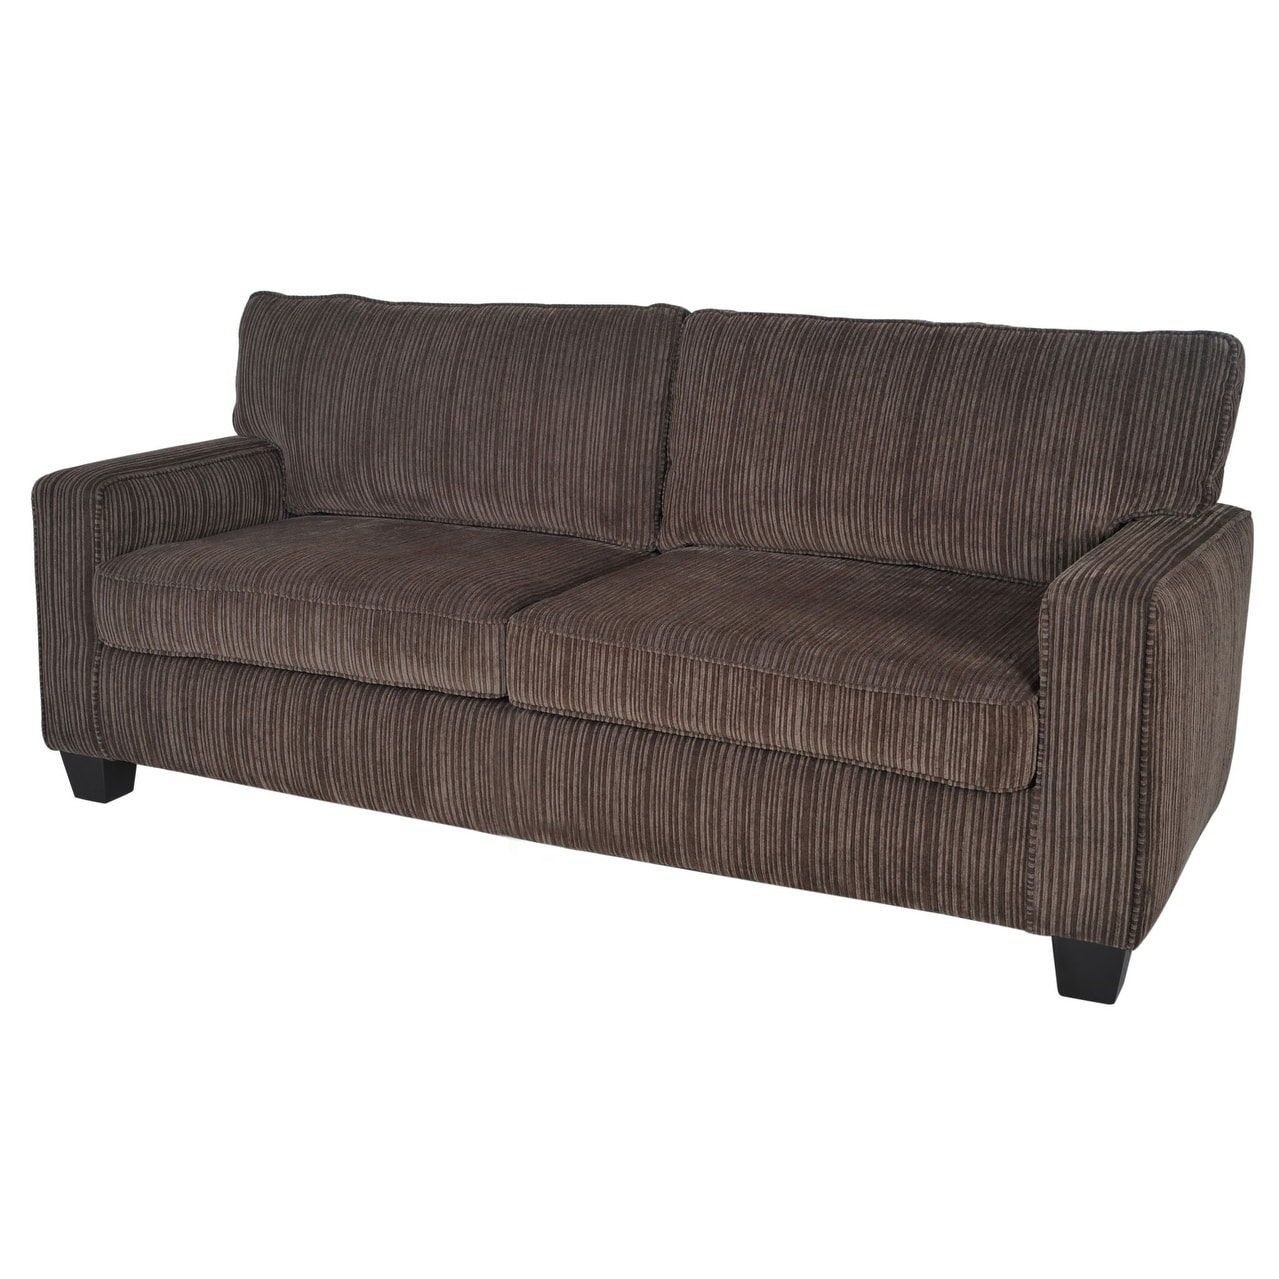 Shop Serta Palisades 78 Inch Sofa Free Shipping Today Overstock